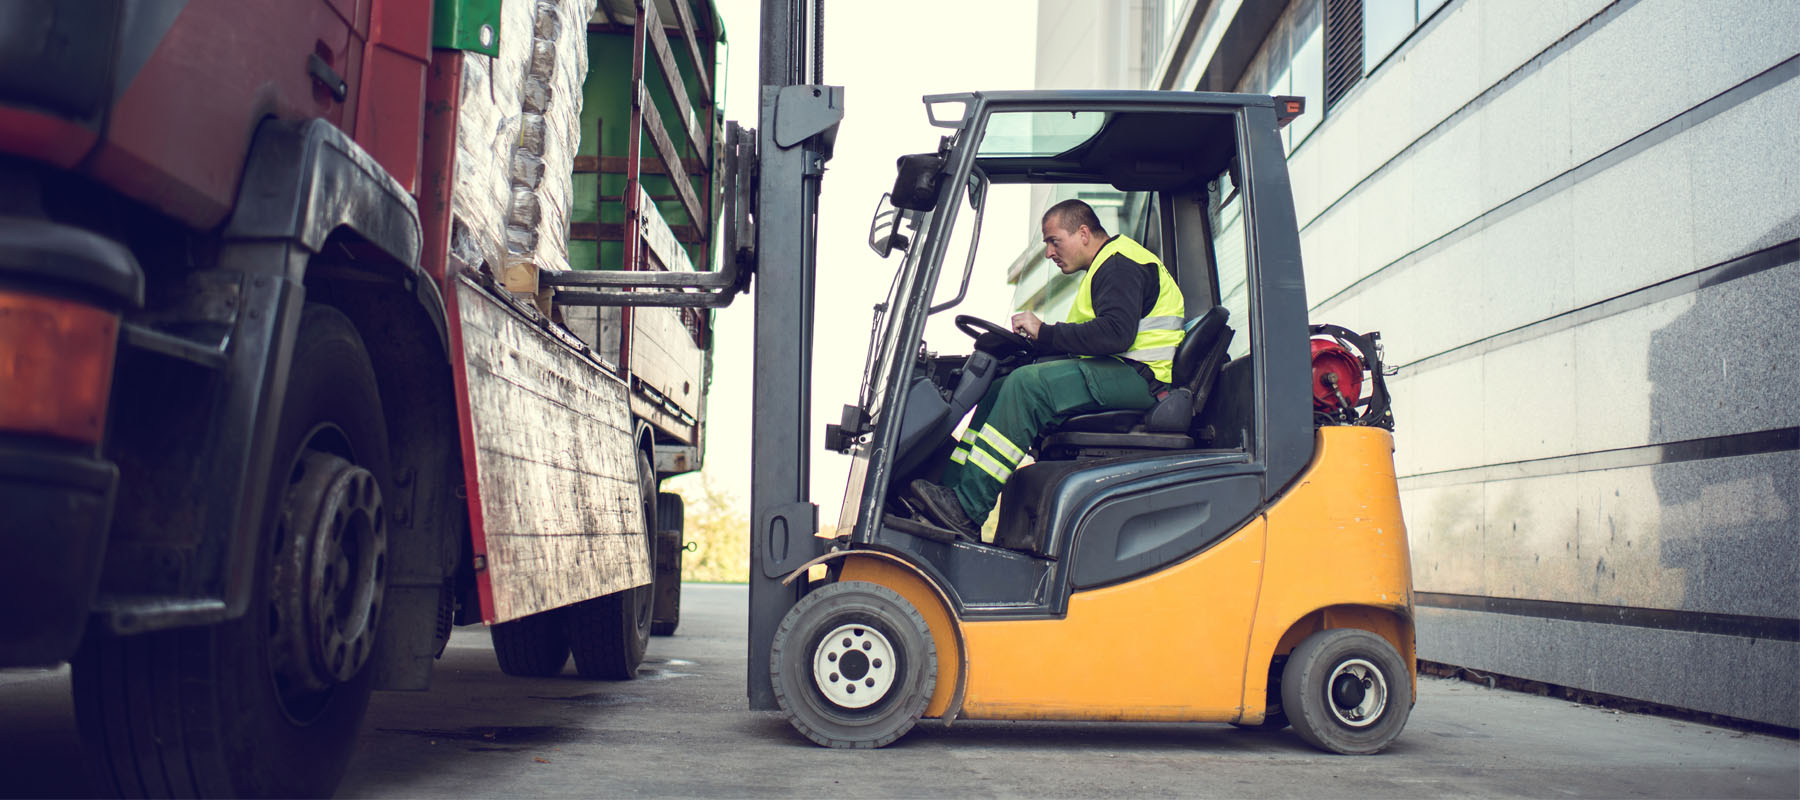 Forklift Licence Training Course Ohsa Occupational Health Services